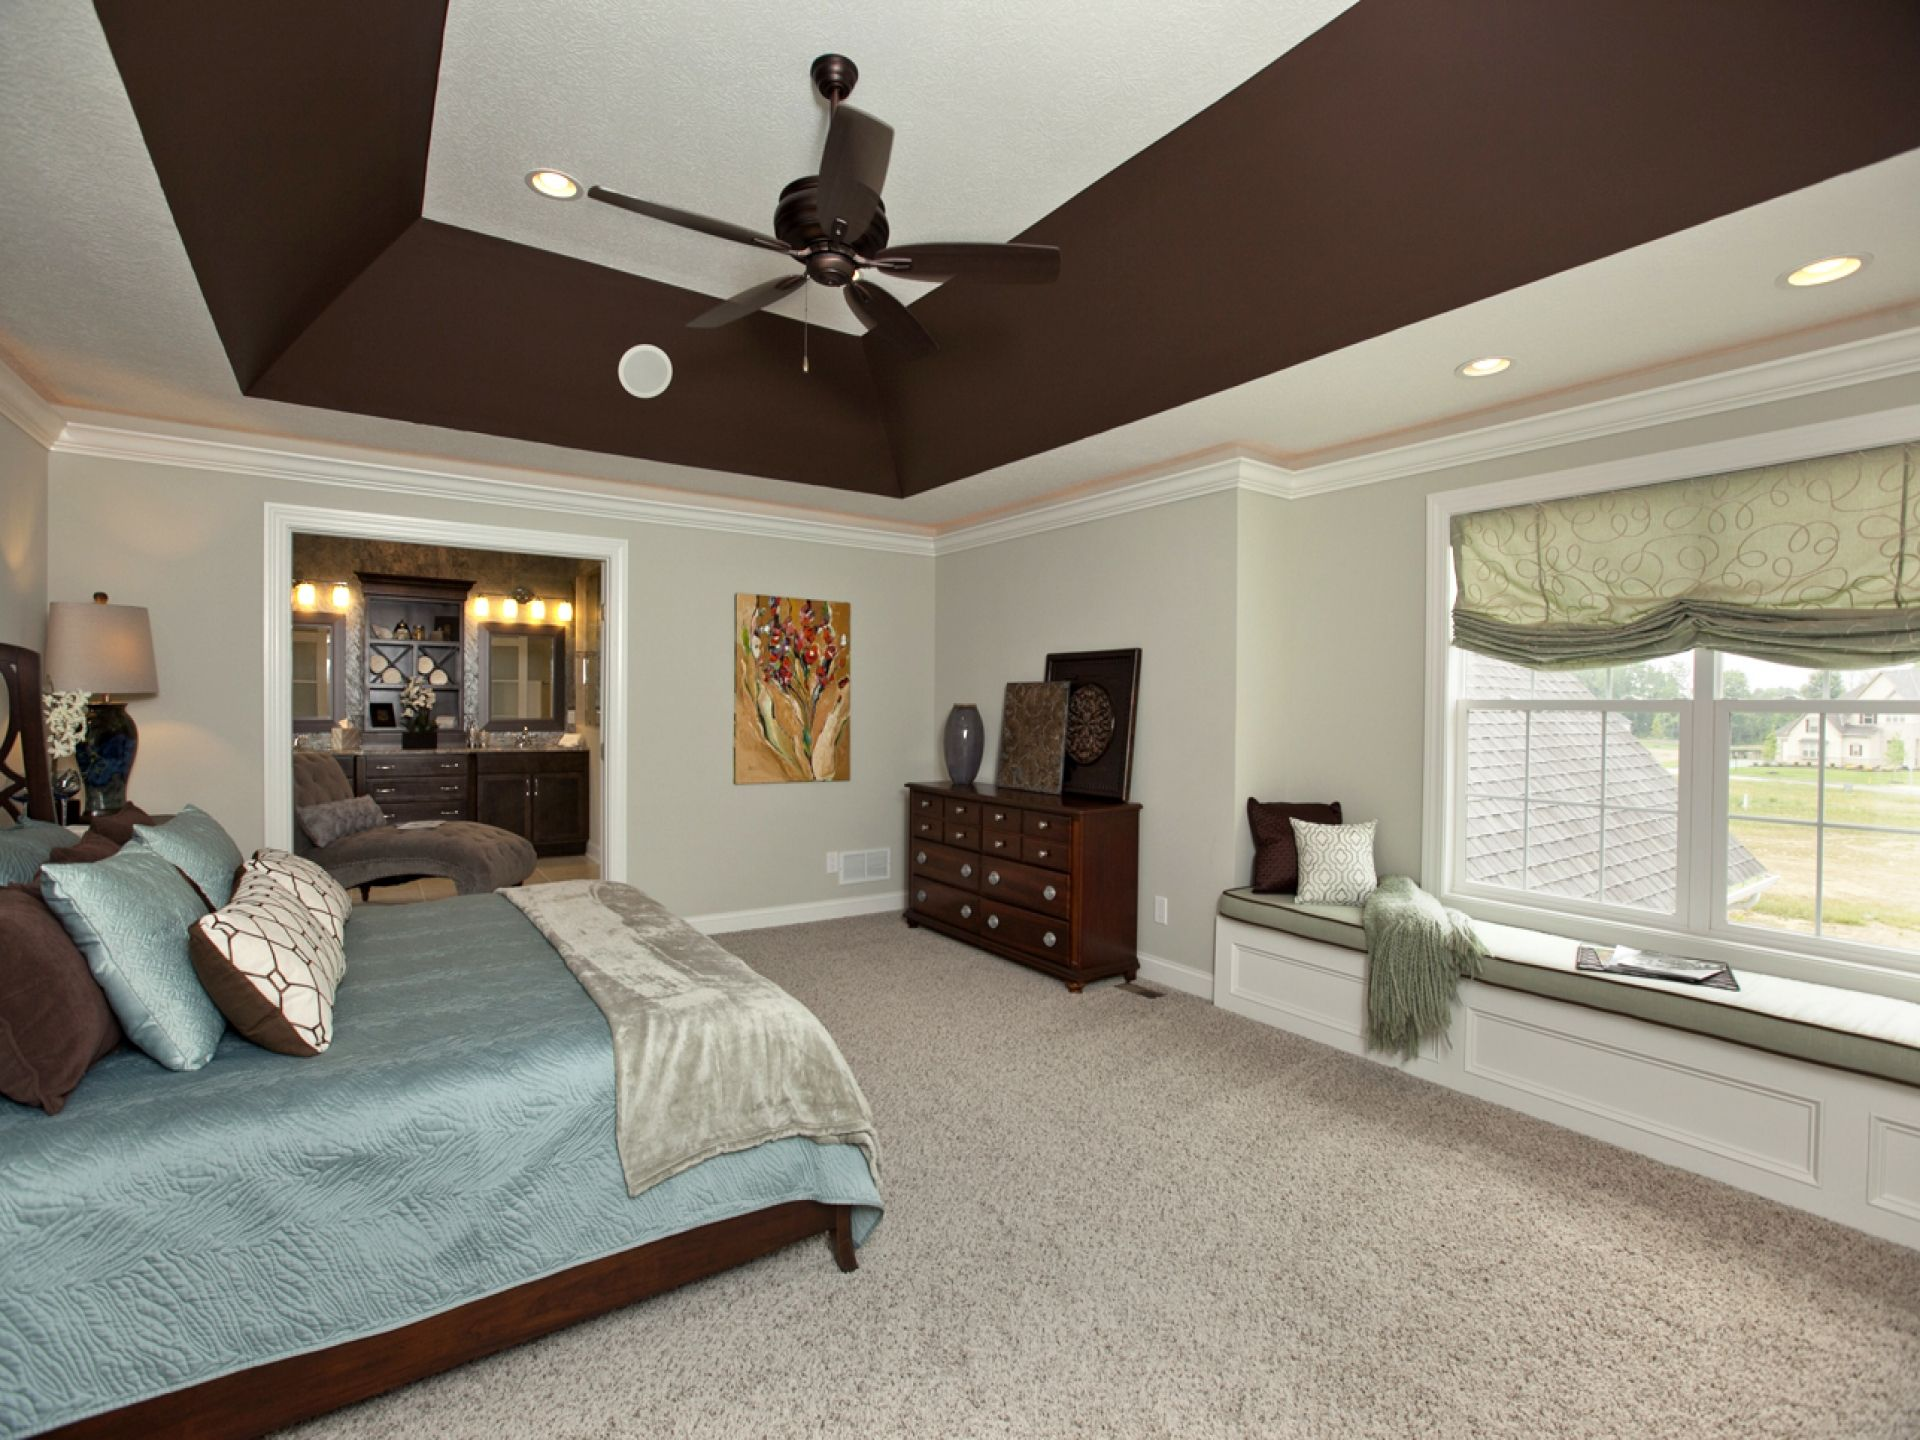 Master Bedroom Tray Ceiling deep angled tray ceiling in master bedroom 3 pillar homes bedroom